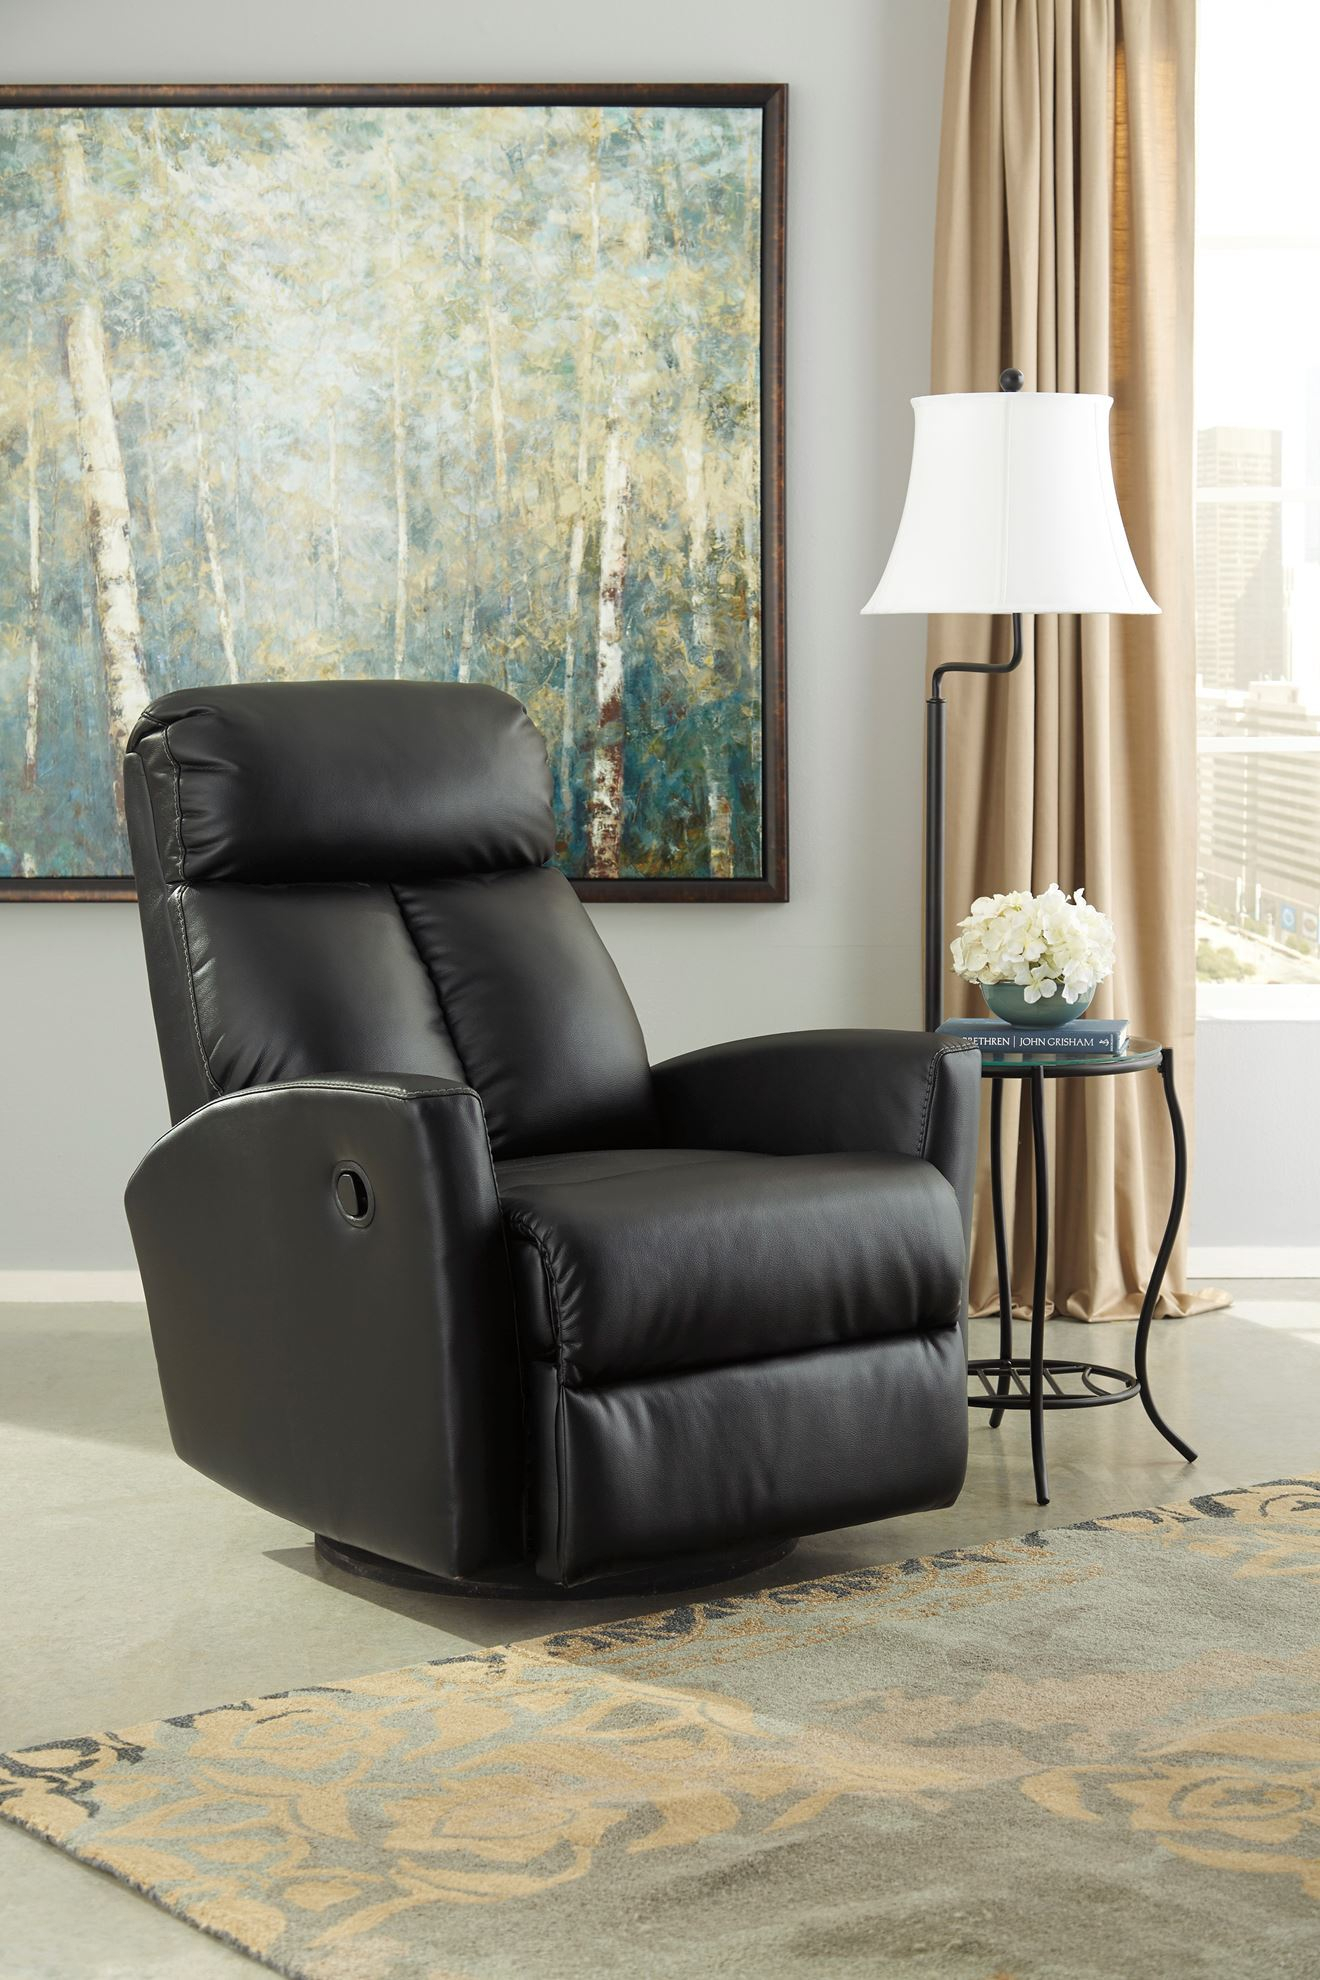 Furniture: Swivel Glider Recliner Is Perfect For Any Nursery Or Intended For Dale Iii Polyurethane Swivel Glider Recliners (Image 13 of 25)